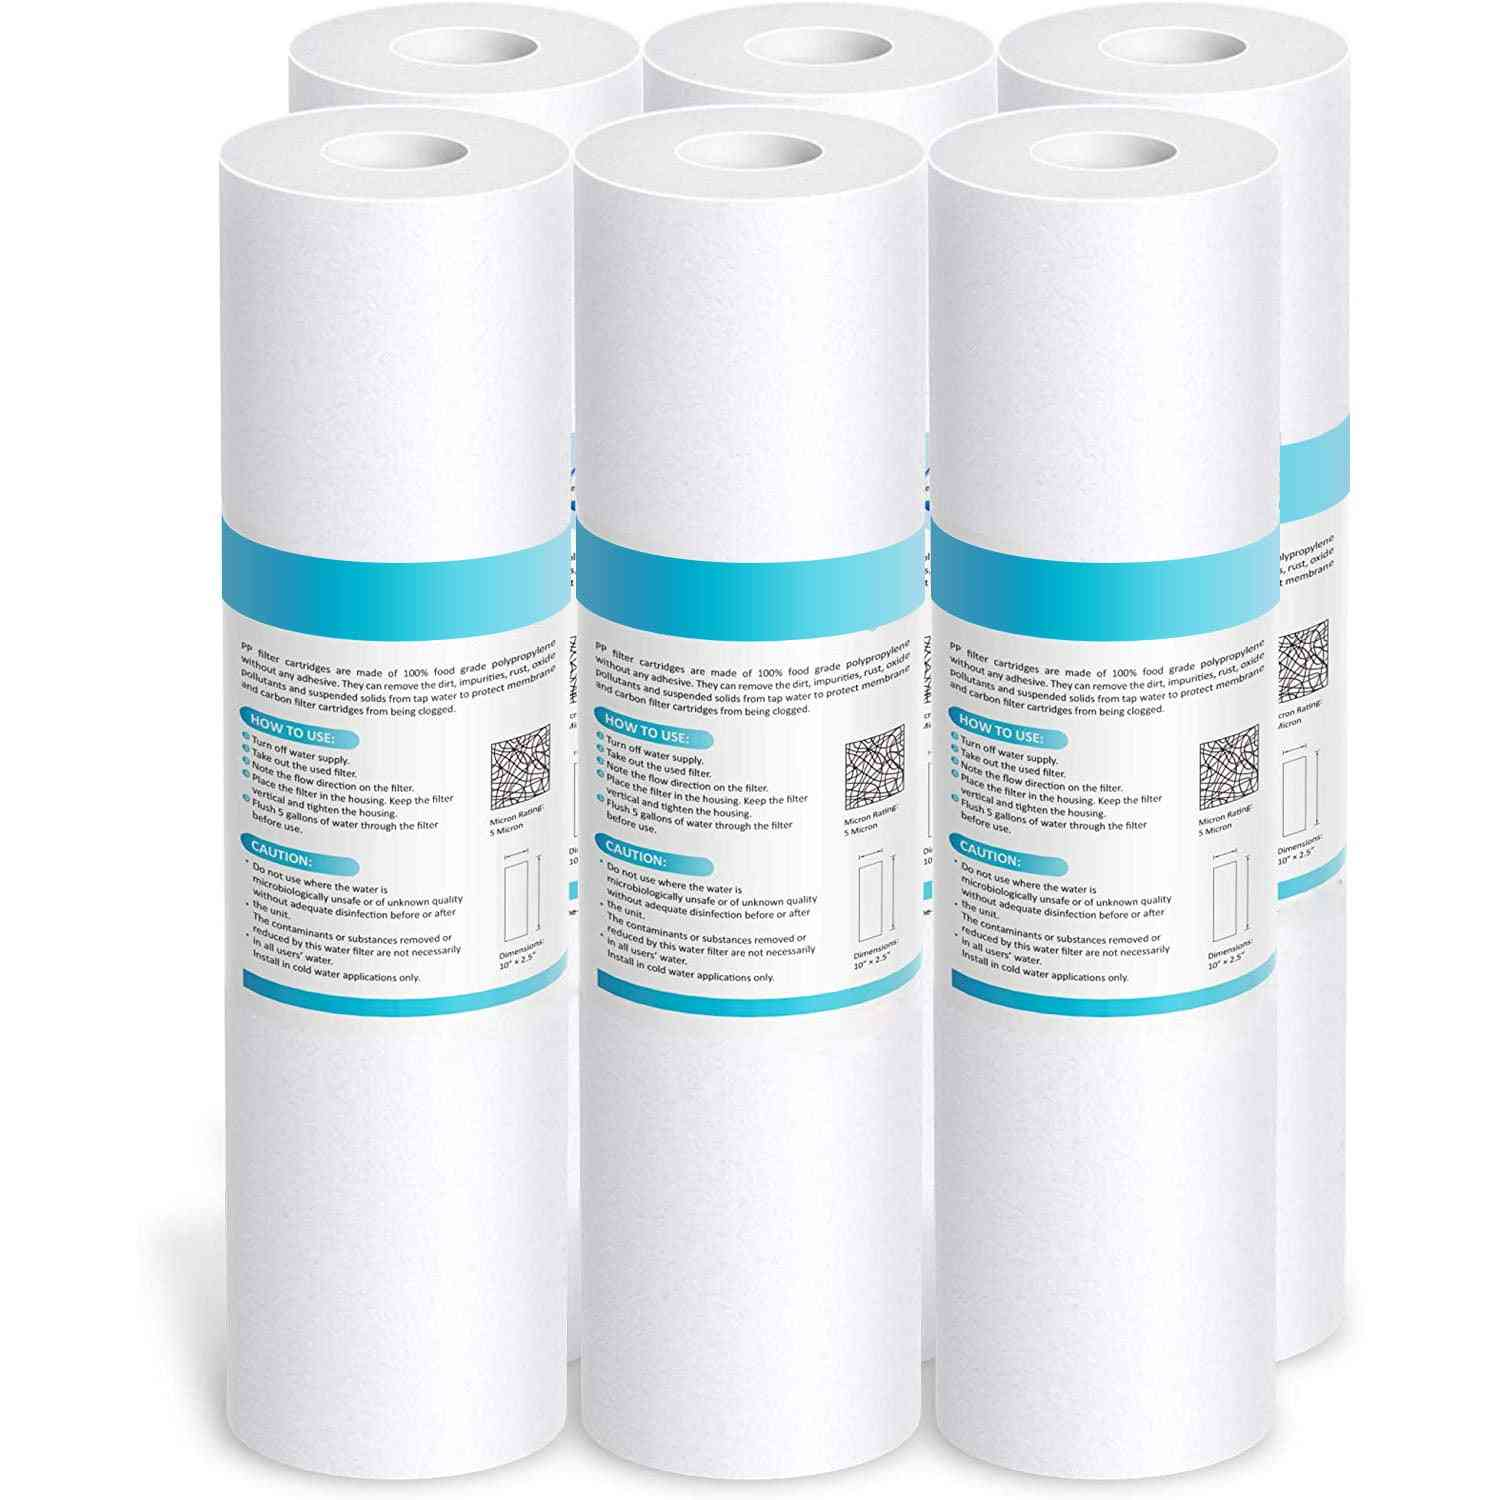 Replacement Polypropylene Sediment Filter Cartridge For Whole House, Compatible